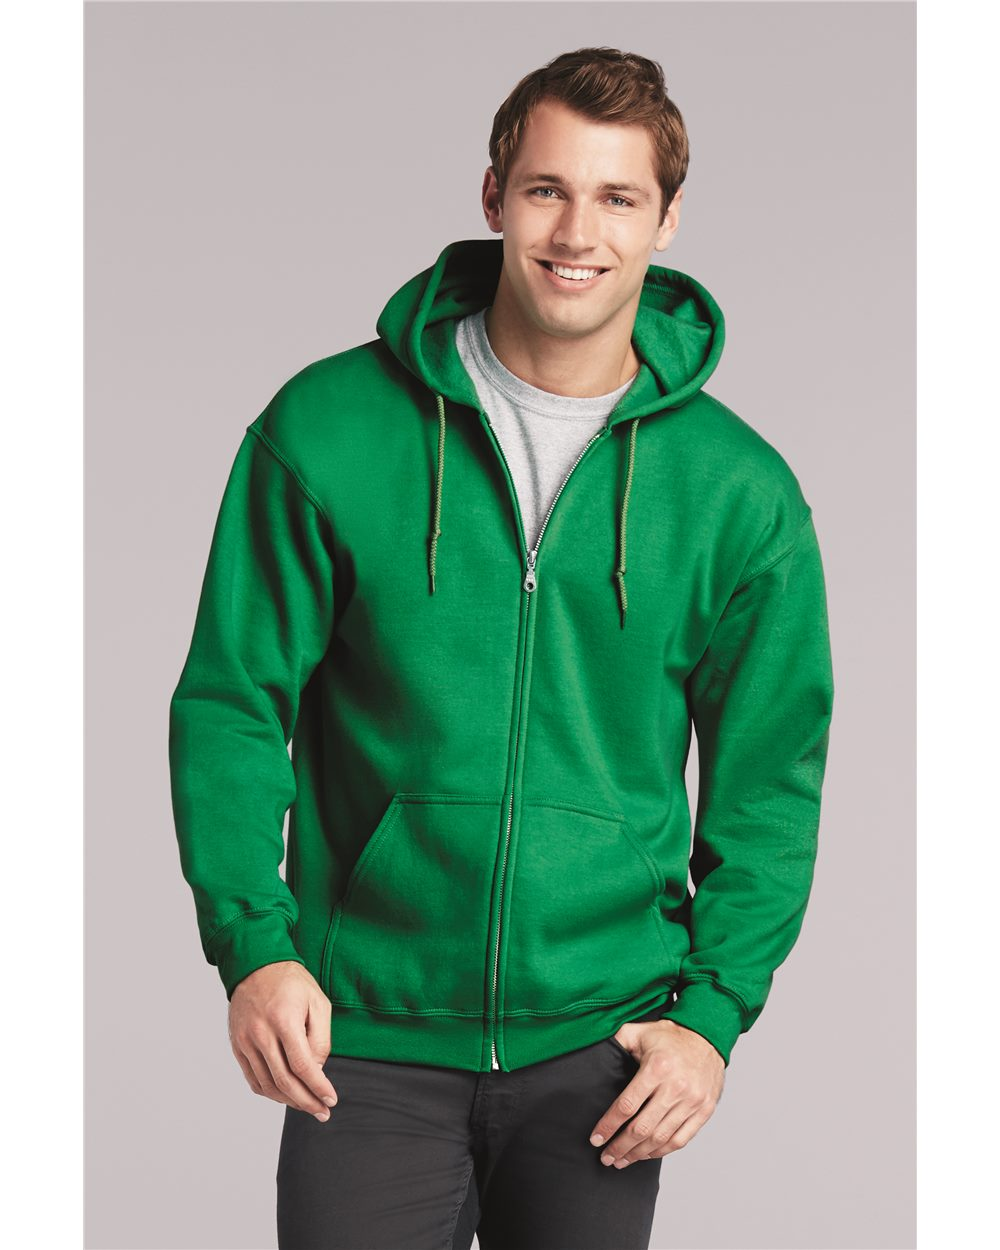 Gildan 18600-Heavy Blend Full Zip Hooded Sweatshirt....